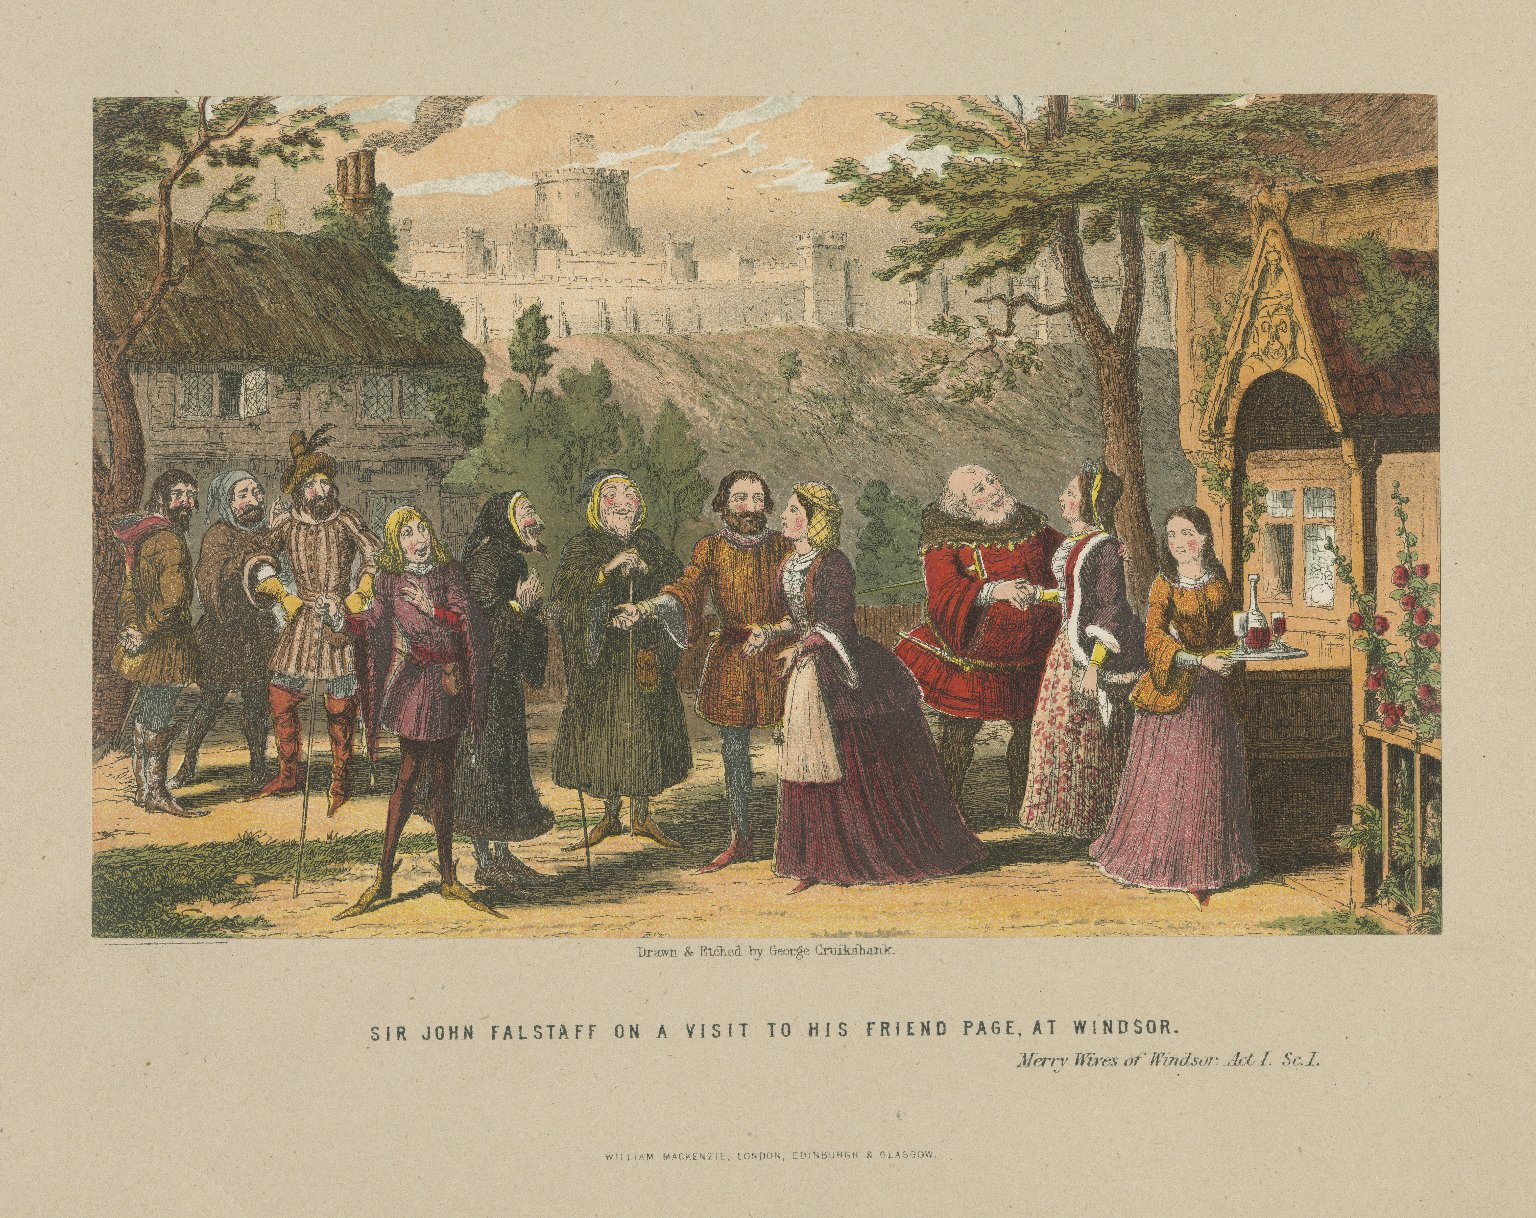 Merry wives of Windsor, act I, sc. I, Sir John Falstaff on a visit to his friend Page, at Windsor [graphic] / drawn & etched by George Cruikshank.